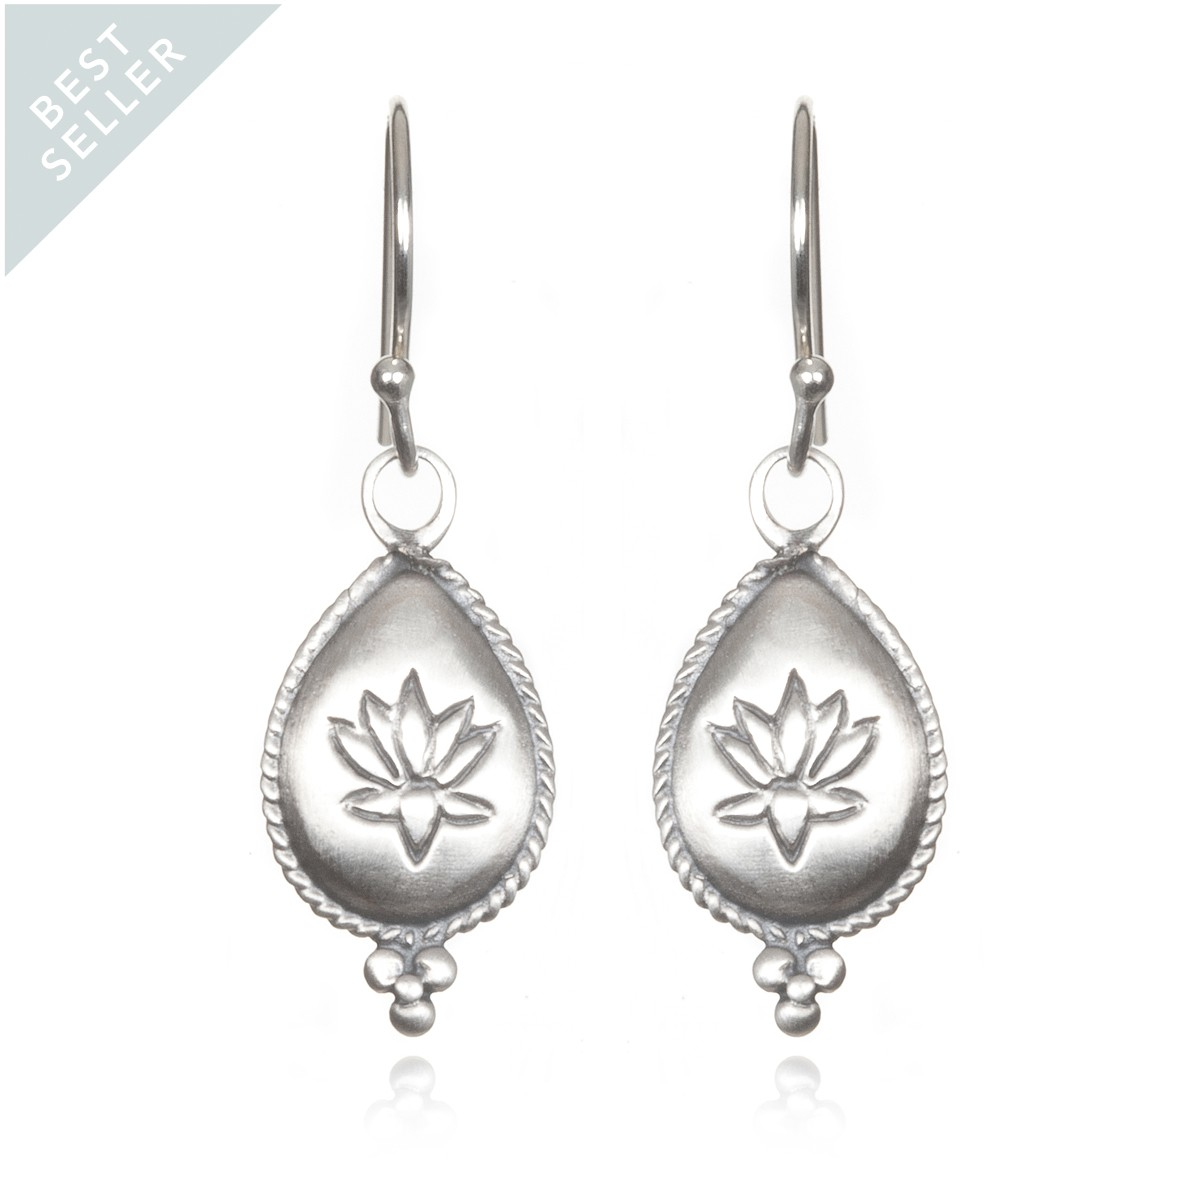 Satya Silver Lotus Earrings - Blissful Blooms